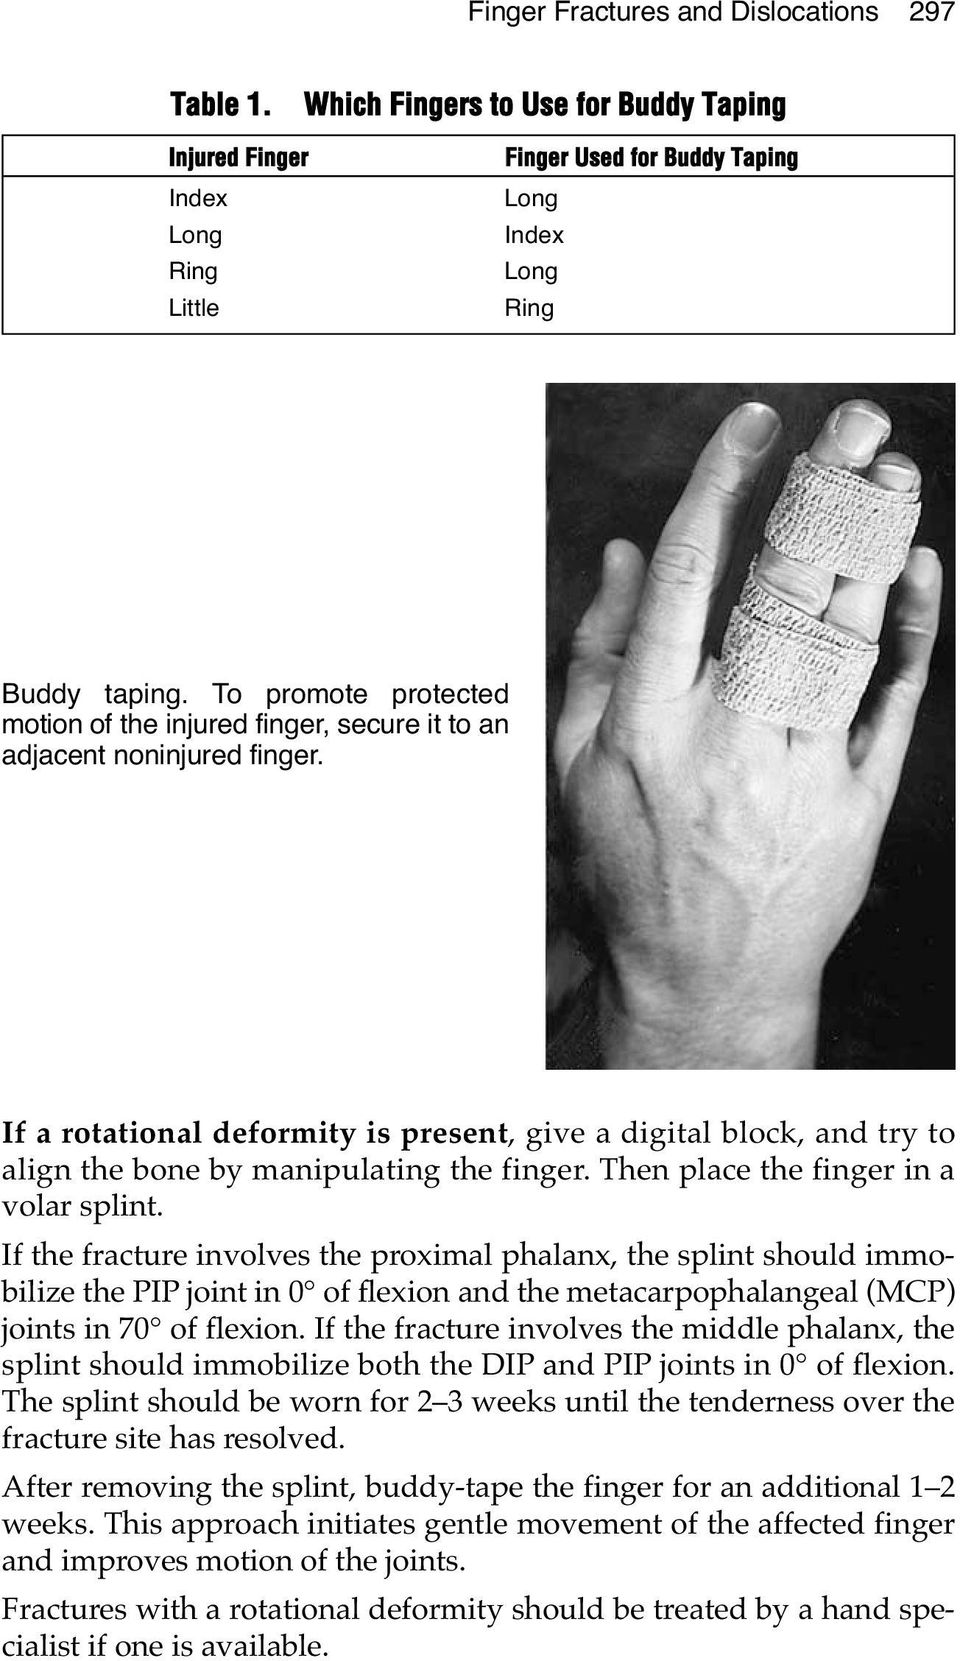 If a rotational deformity is present, give a digital block, and try to align the bone by manipulating the finger. Then place the finger in a volar splint.